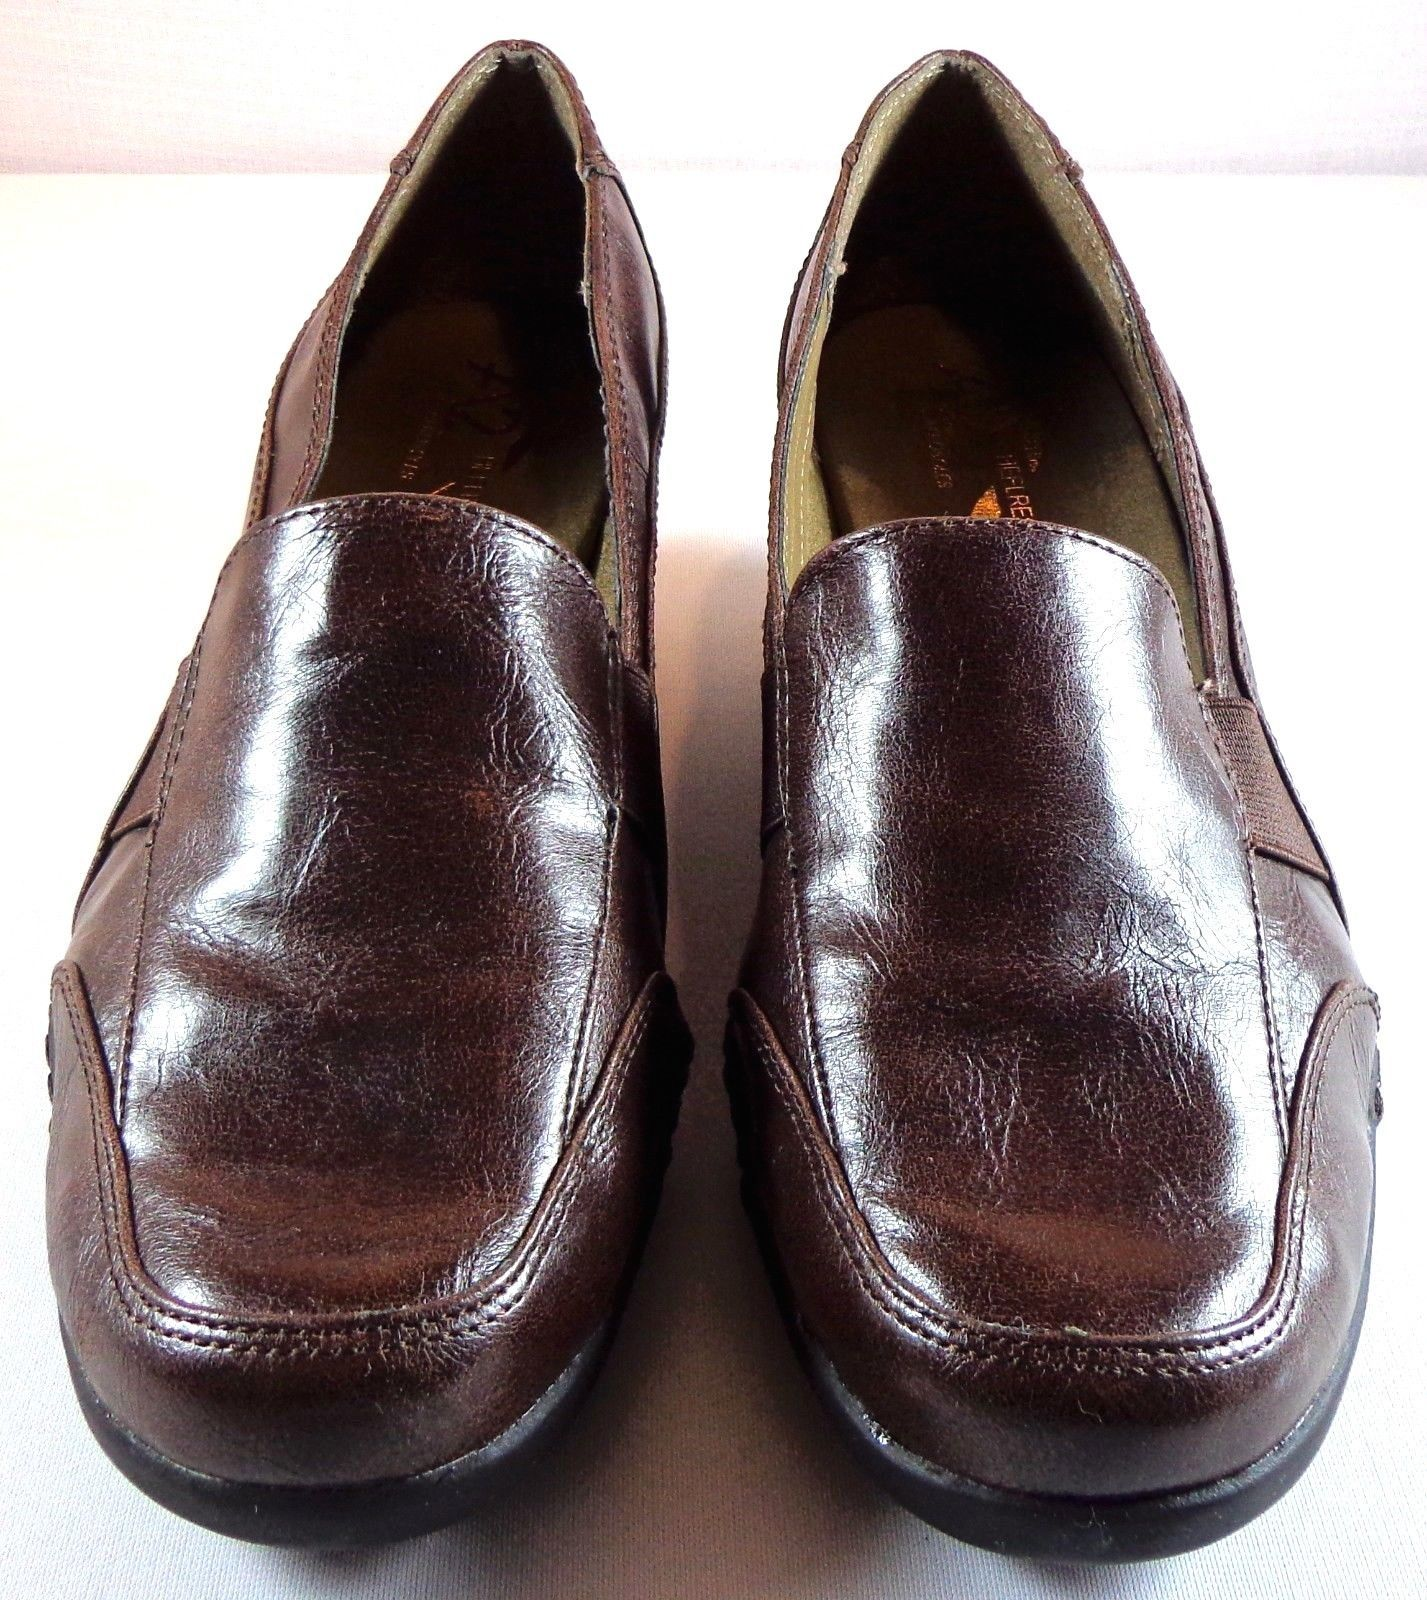 fccb42b1e9f Aerosoles A2 Shoes Womens Brown Wedge Heel and 23 similar items